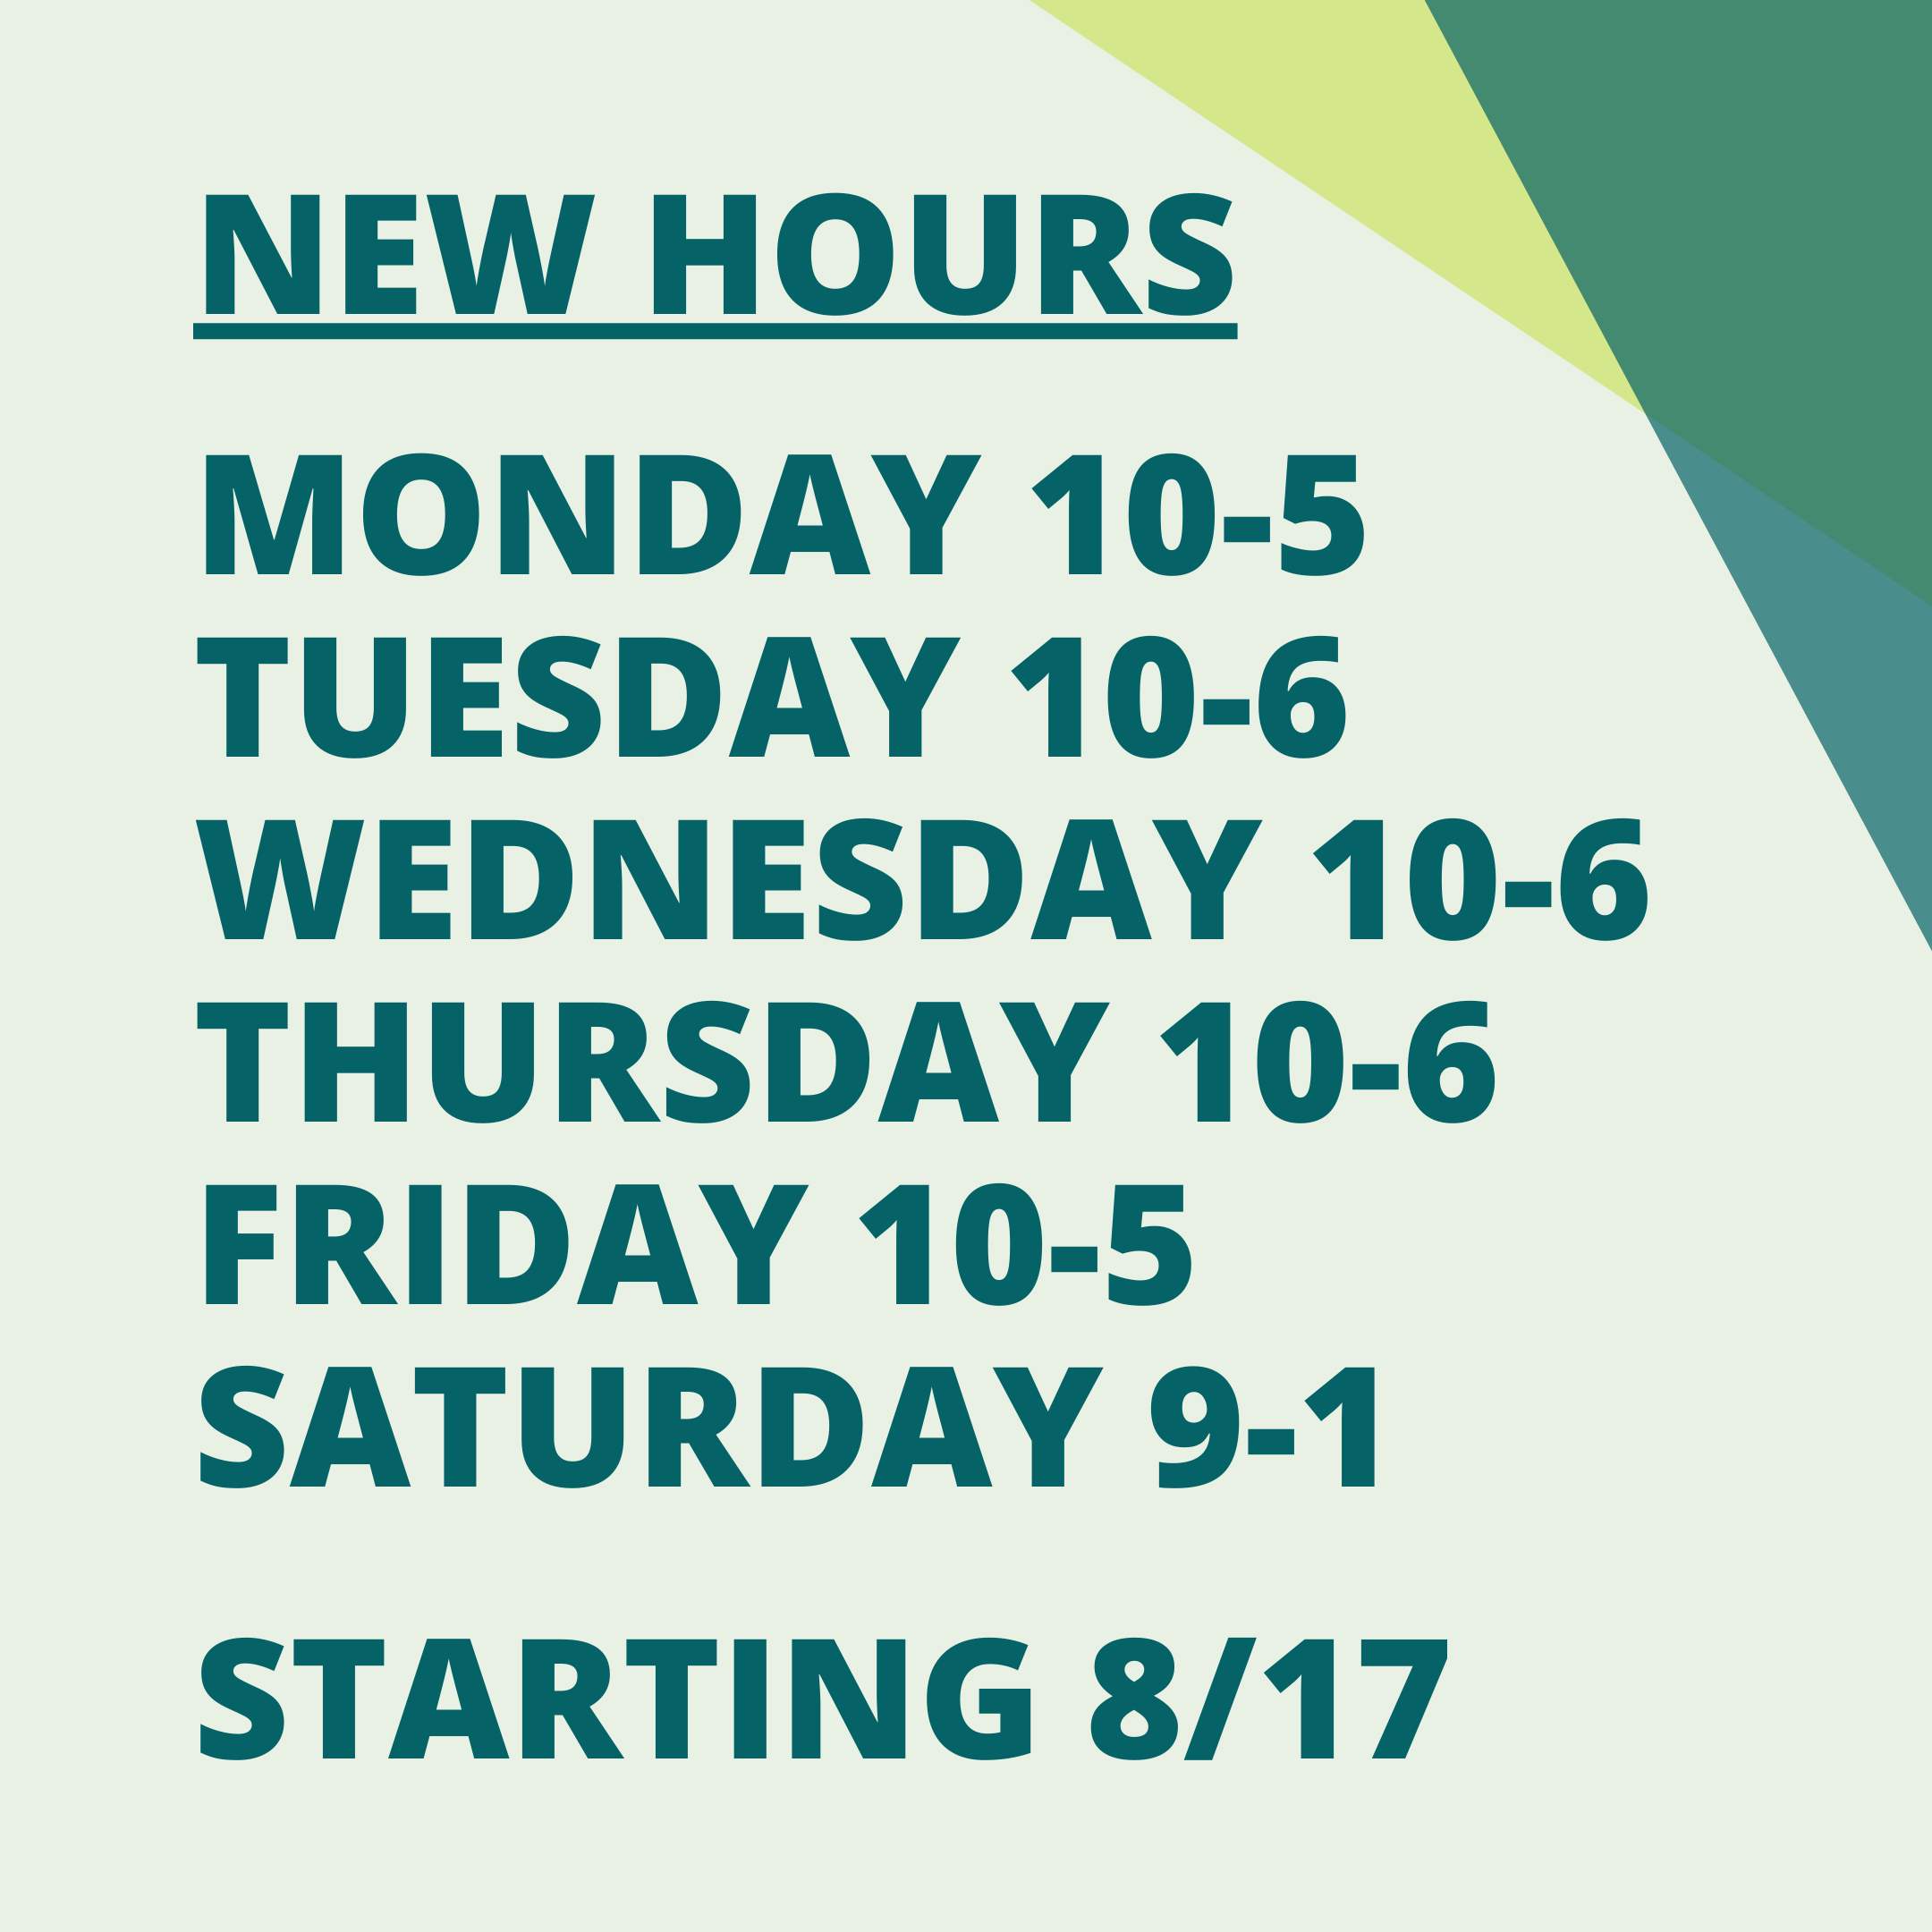 new hours MF 10-5 TWH 10-6